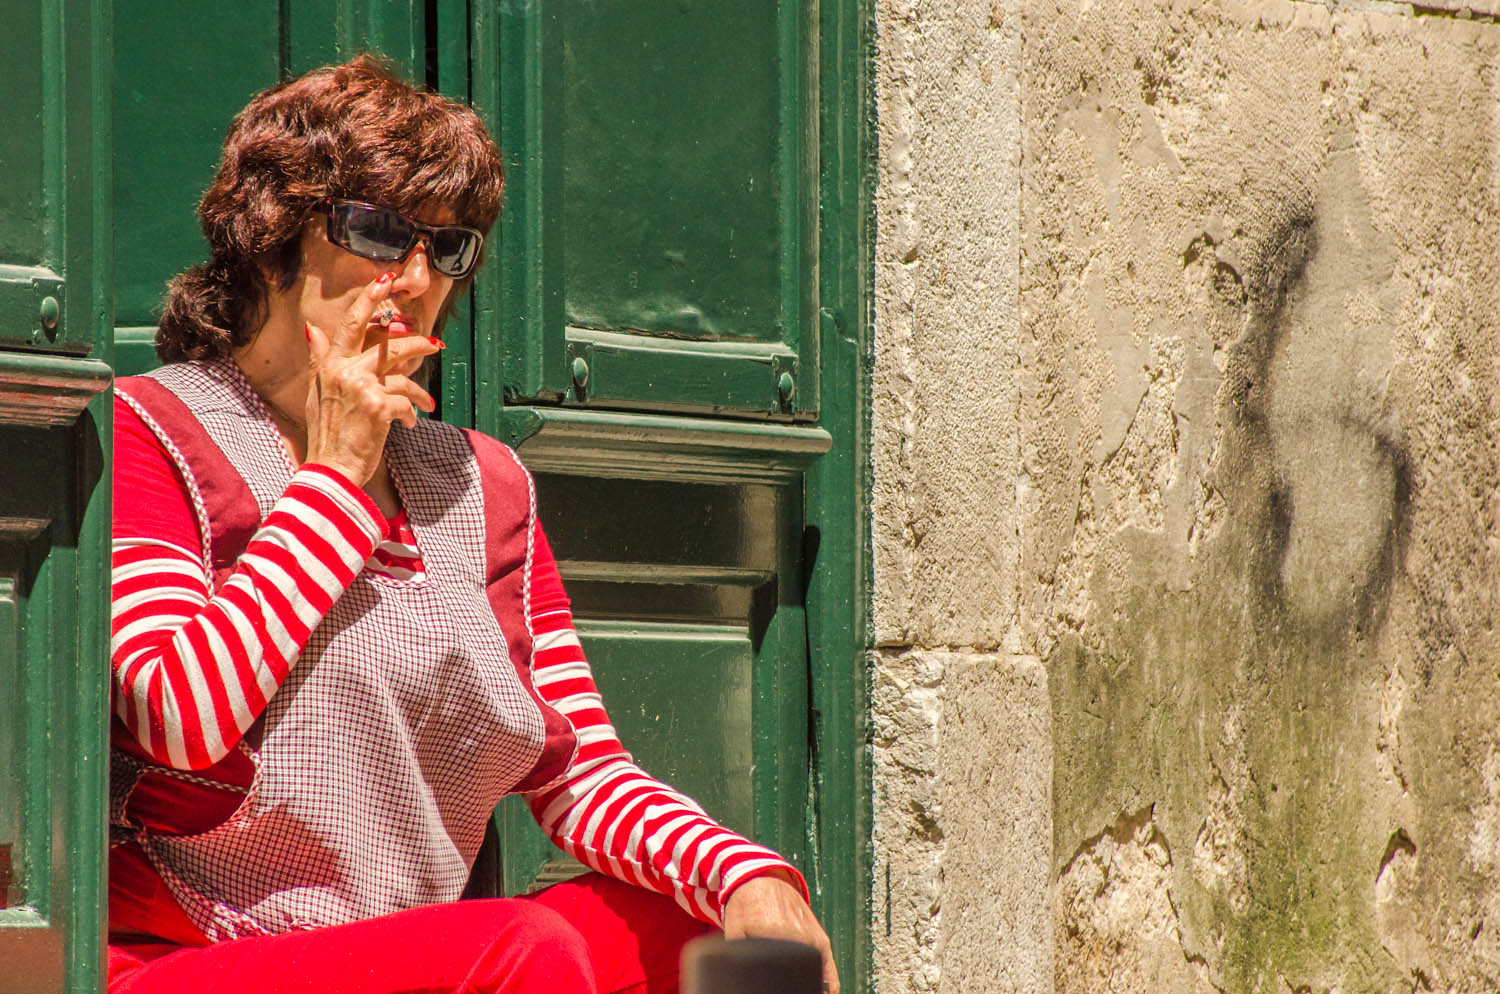 Whenever I take the photo tour to Bairro Alto, Lisbon, I've always found an interesting character. The face alone is very interesting with the glasses and the cigarette but how can you resist the red stripes against the green door. Why didn't I shoot vertically? good question, I don't know why.